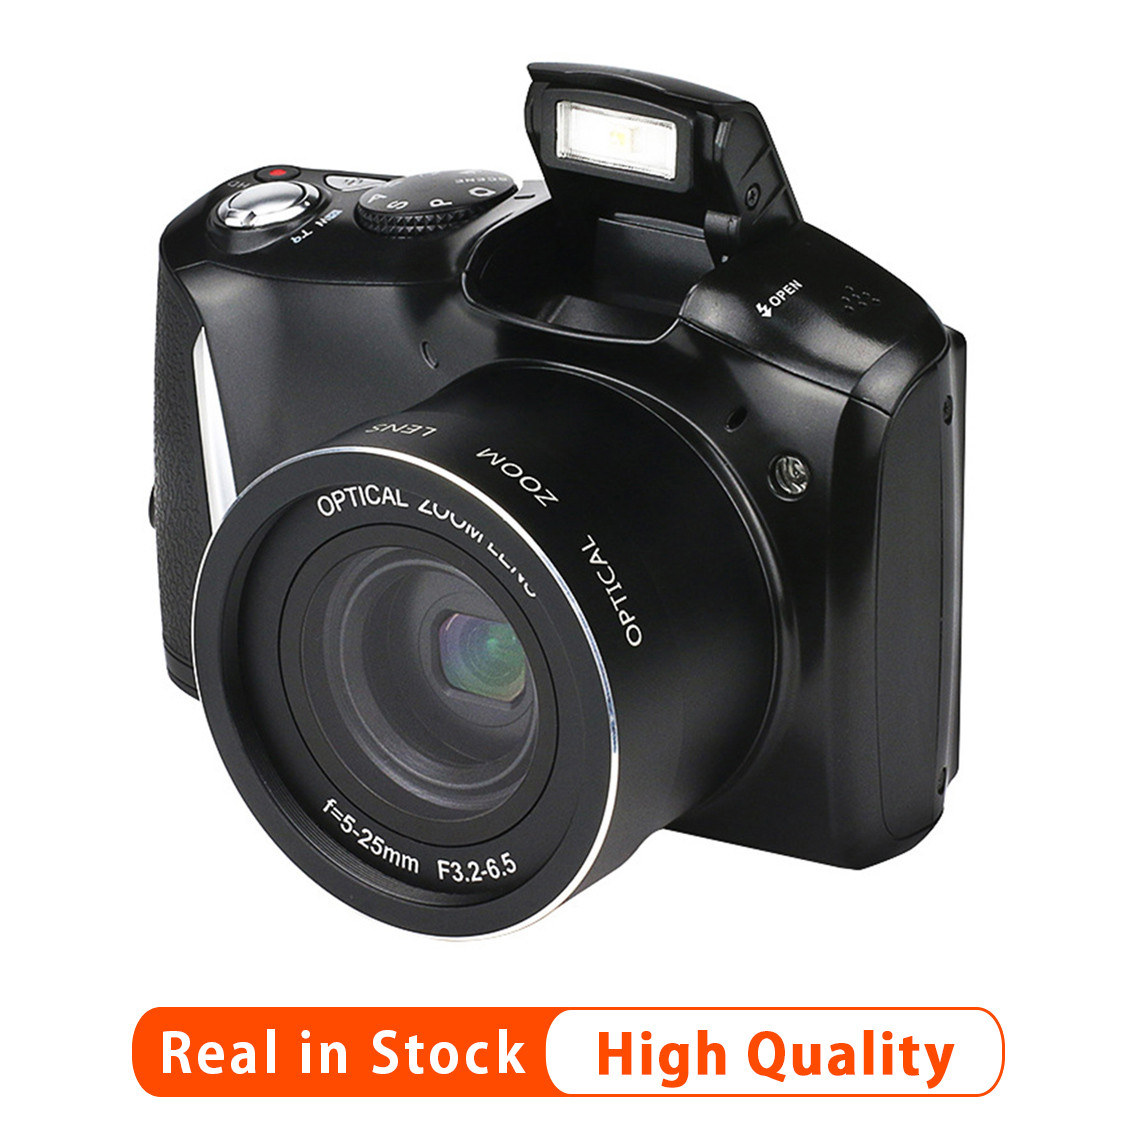 SLR Camera Screen New HD CMOS with 20-Times 24-Megapixel 14MP